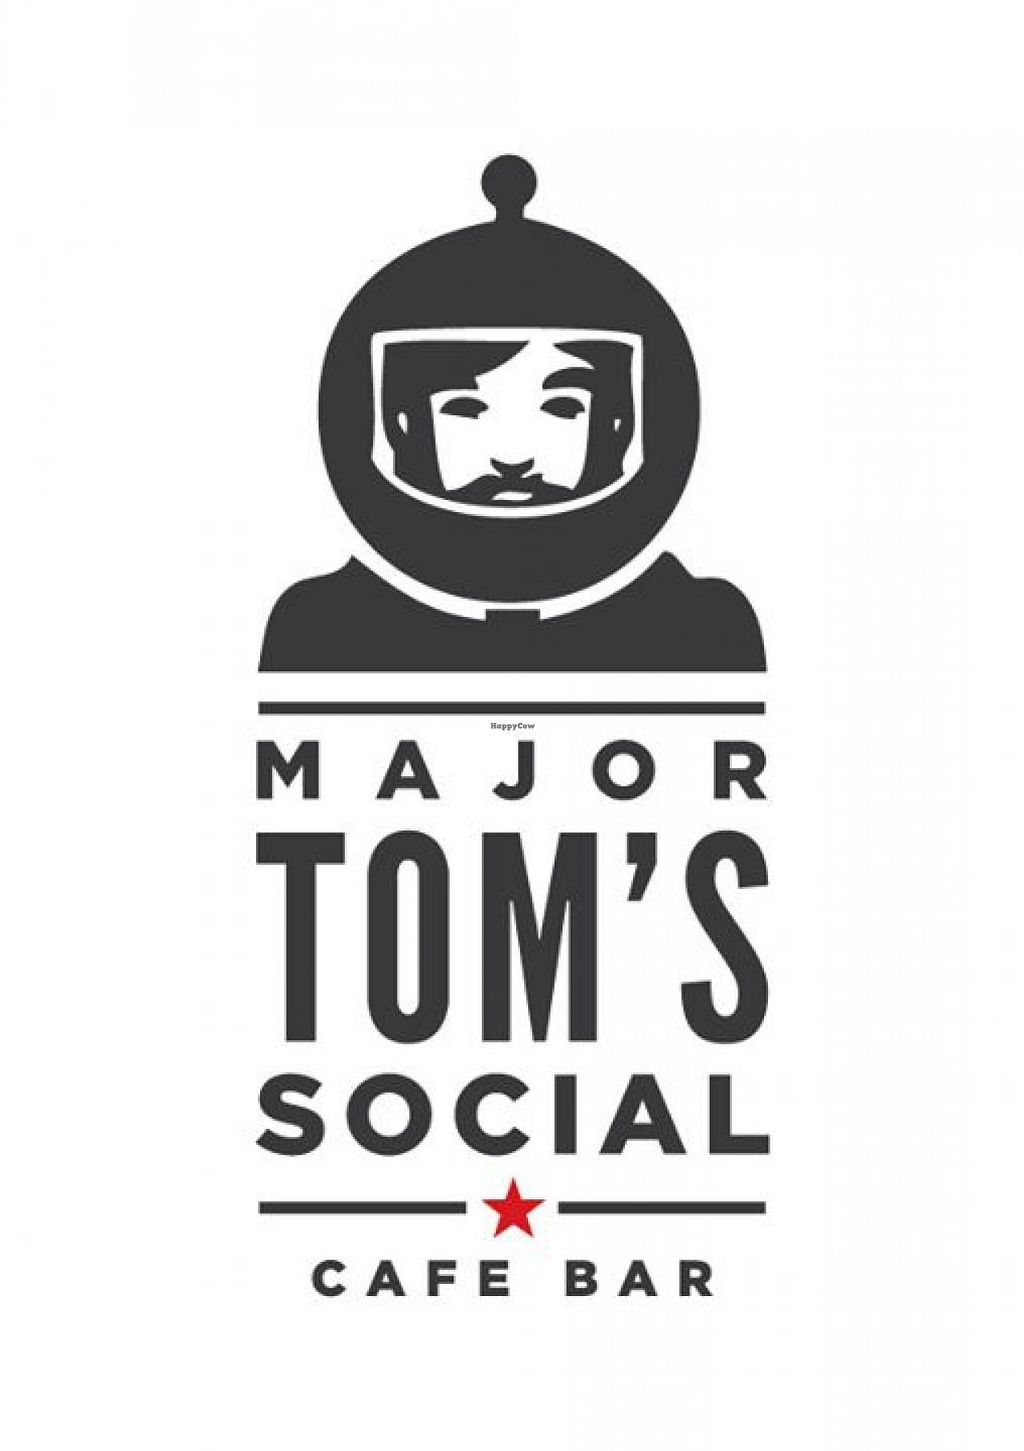 """Photo of Major Tom's Social  by <a href=""""/members/profile/community"""">community</a> <br/>Major Tom's Social <br/> October 24, 2014  - <a href='/contact/abuse/image/52125/83815'>Report</a>"""